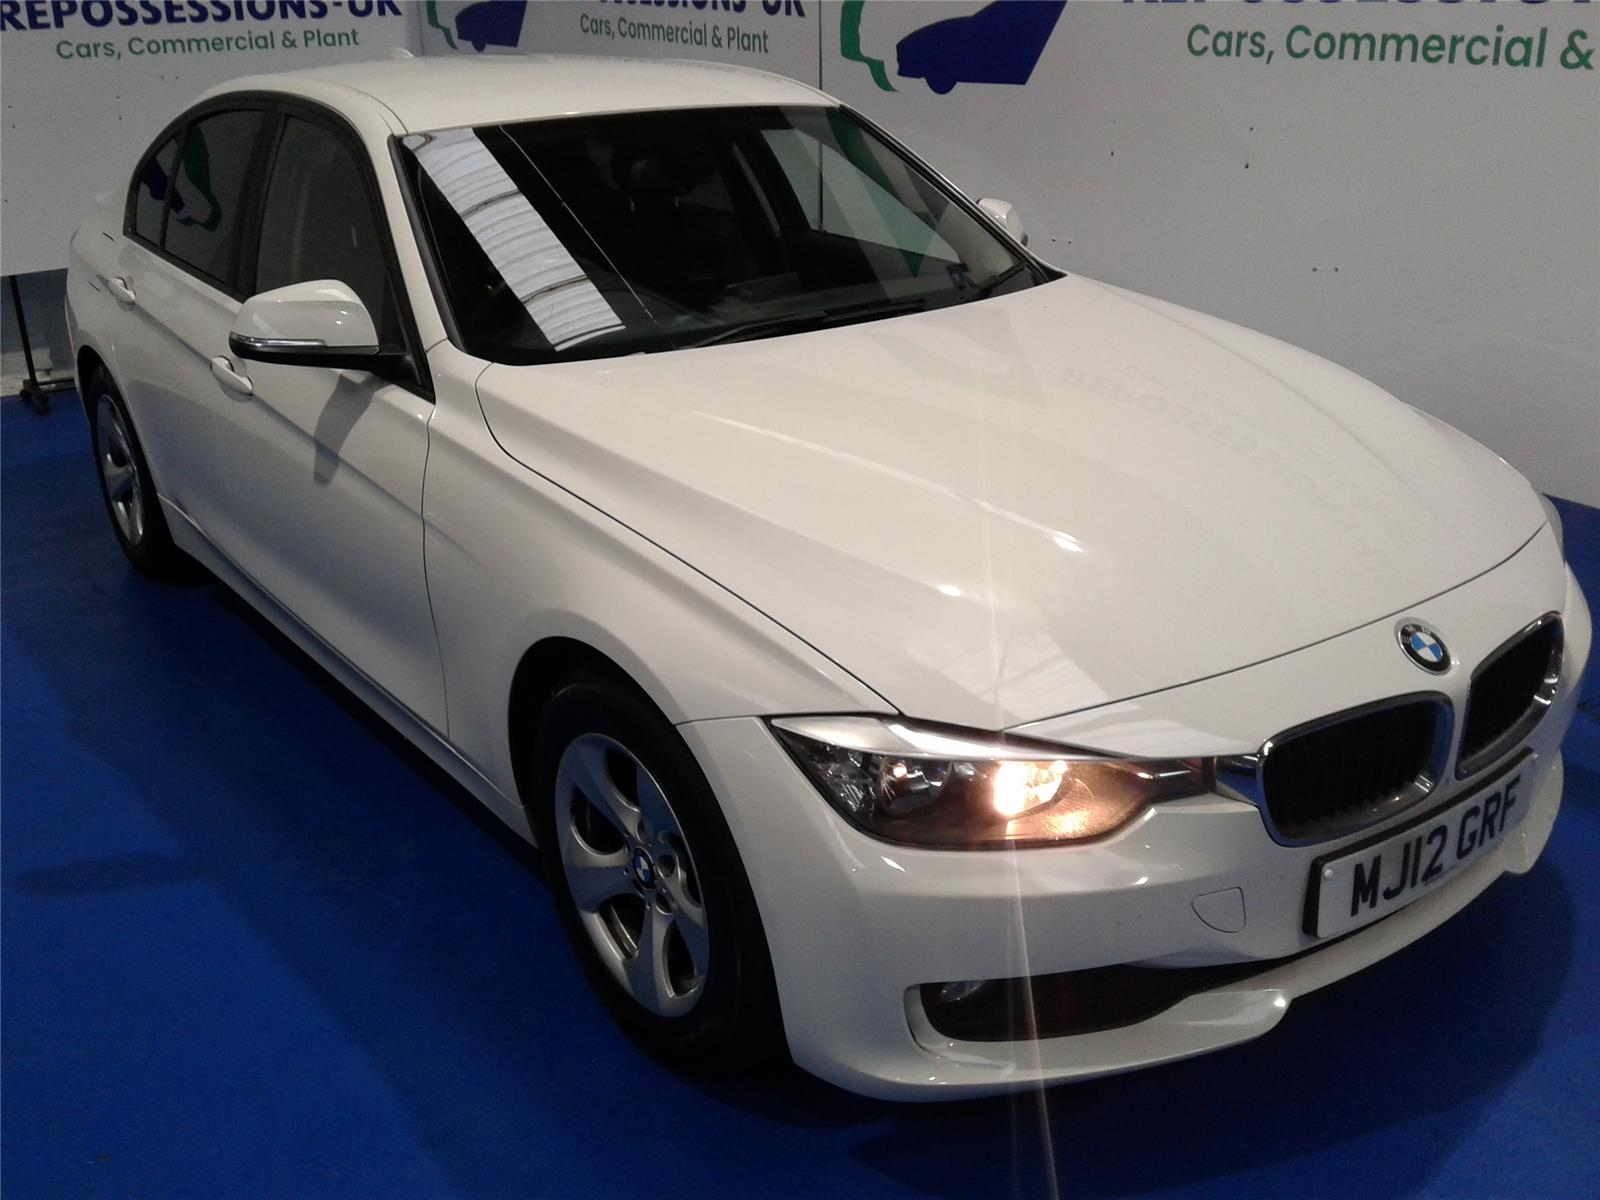 2012 BMW 3 SERIES 320D EFFICIENTDYNAMICS 1995 DIESEL AUTOMATIC 8 Speed 4 DOOR SALOON